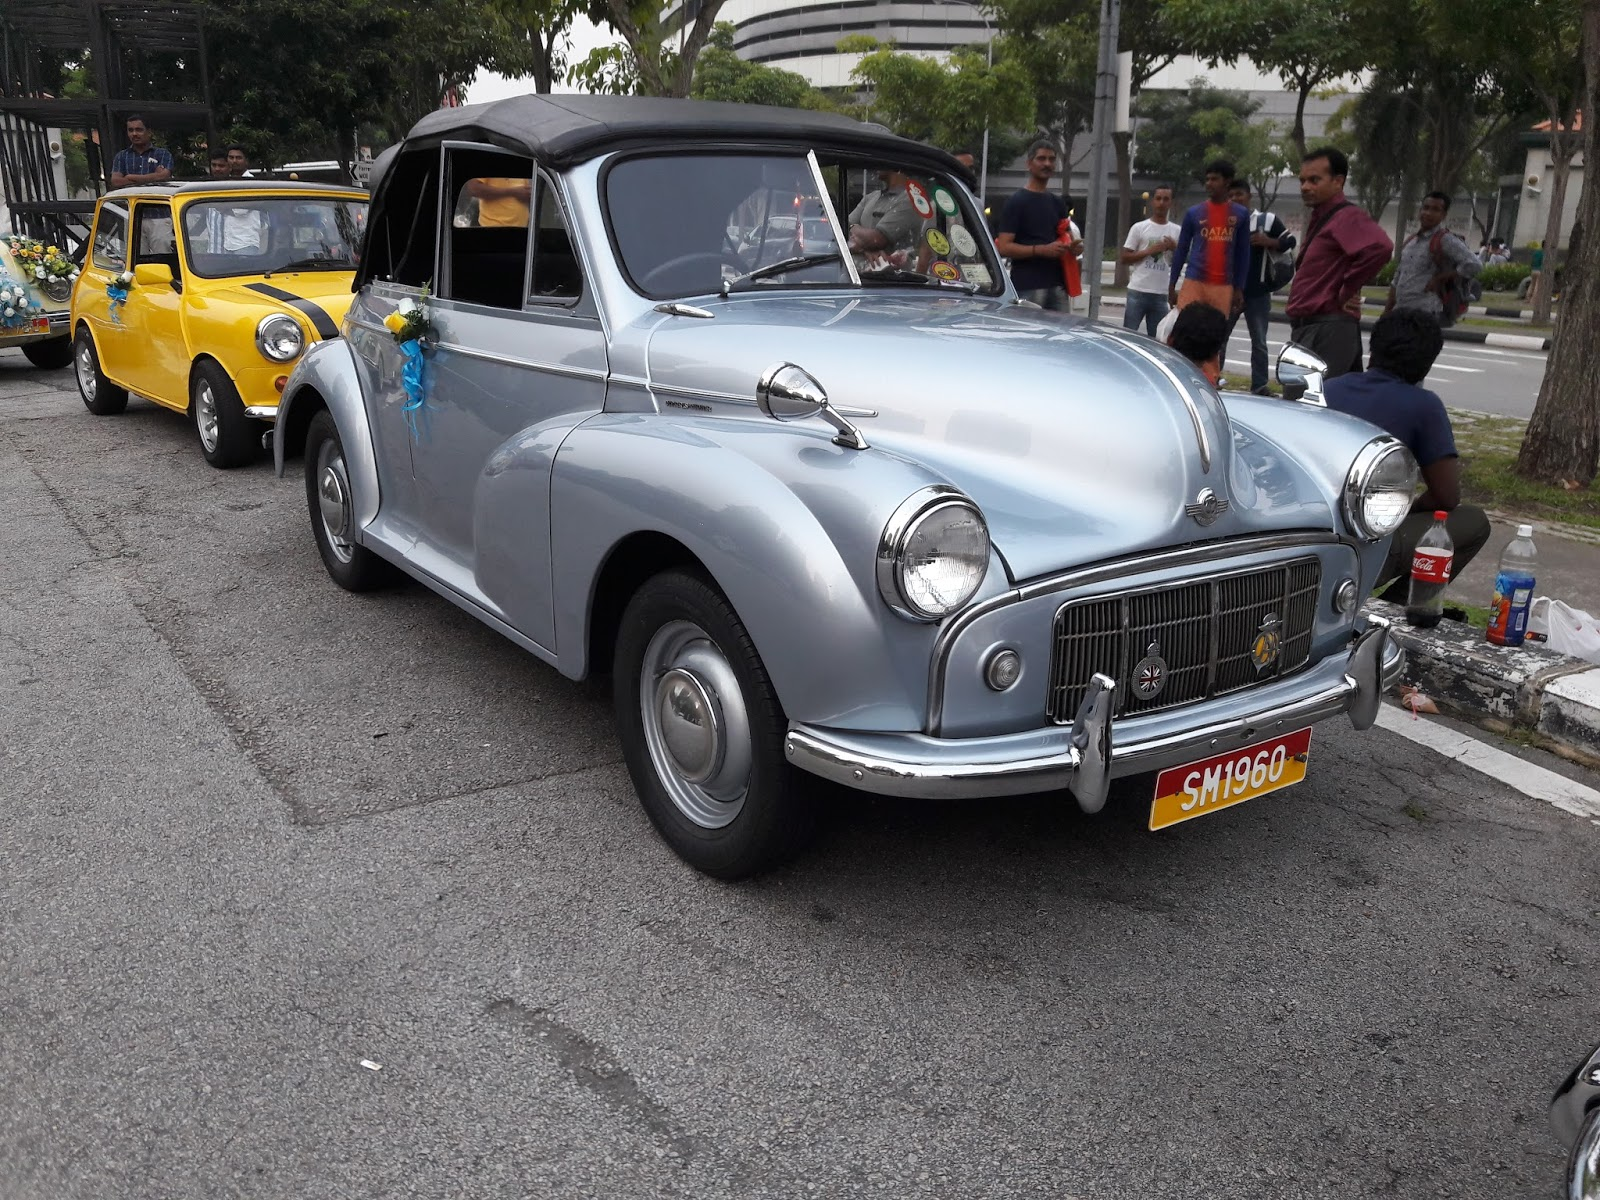 Singapore Vintage and Classic Cars: More than an old car #18 ...